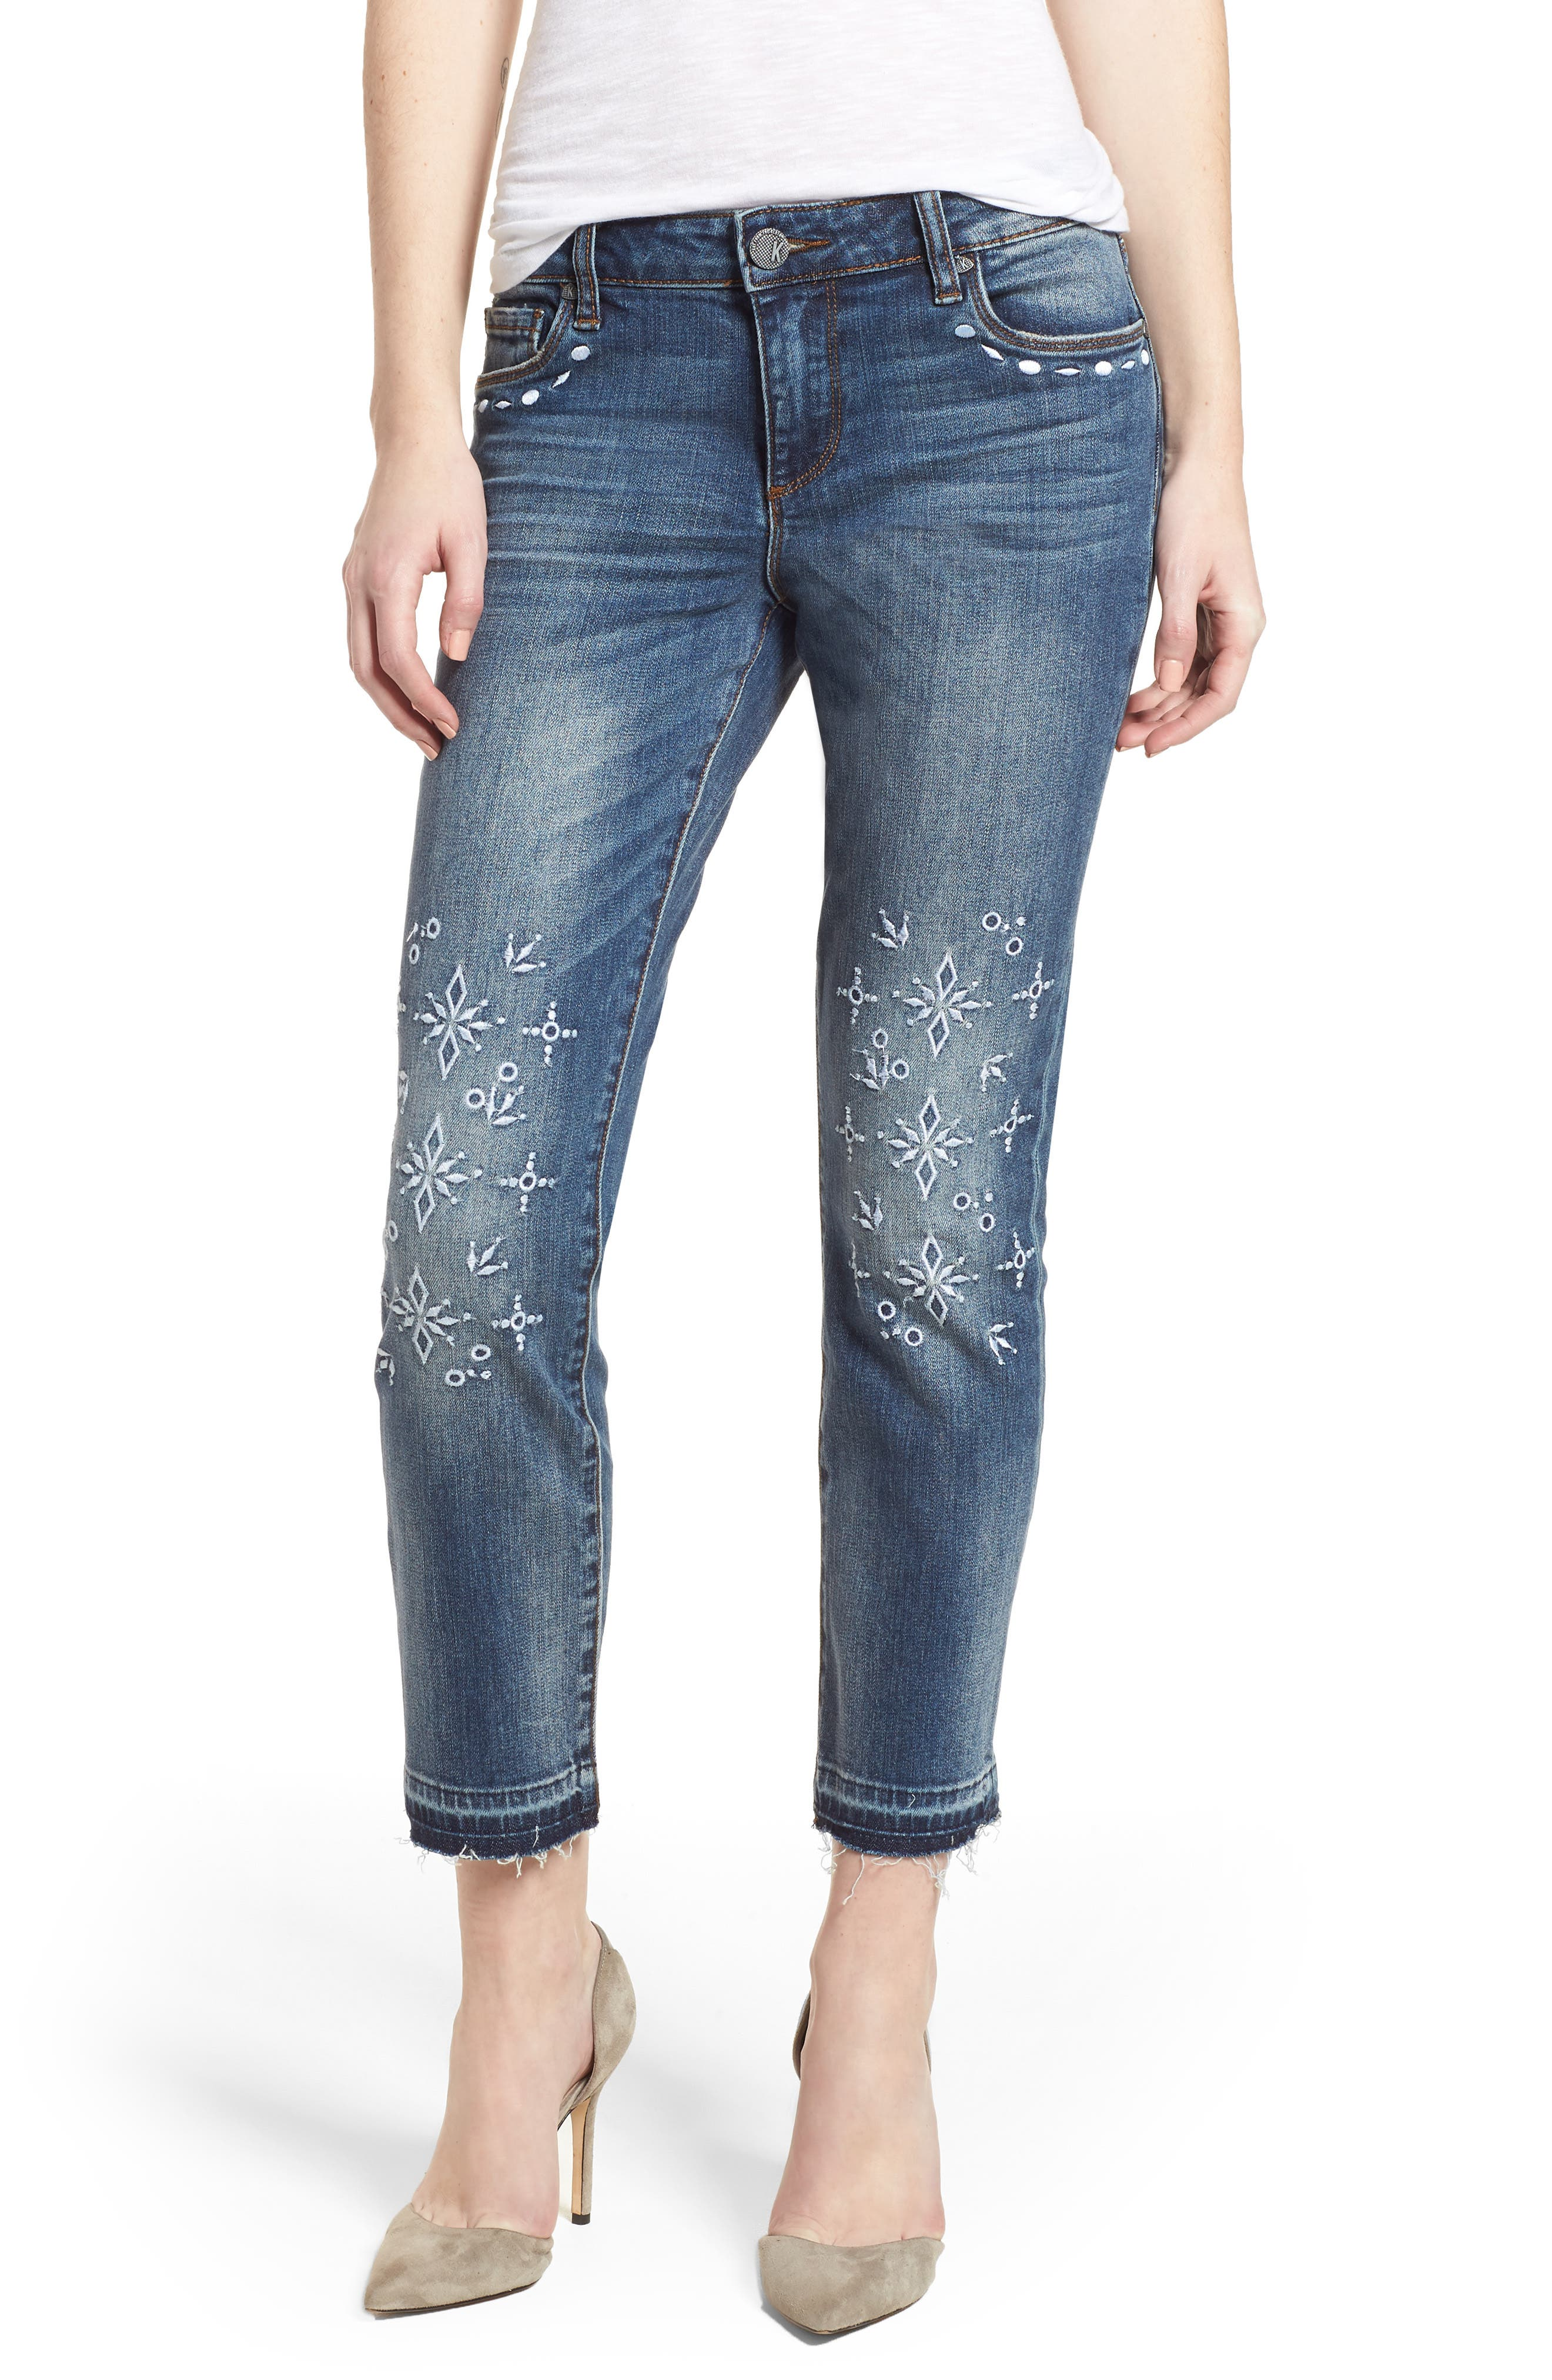 Reese Release Hem Embroidered Jeans,                         Main,                         color, 400